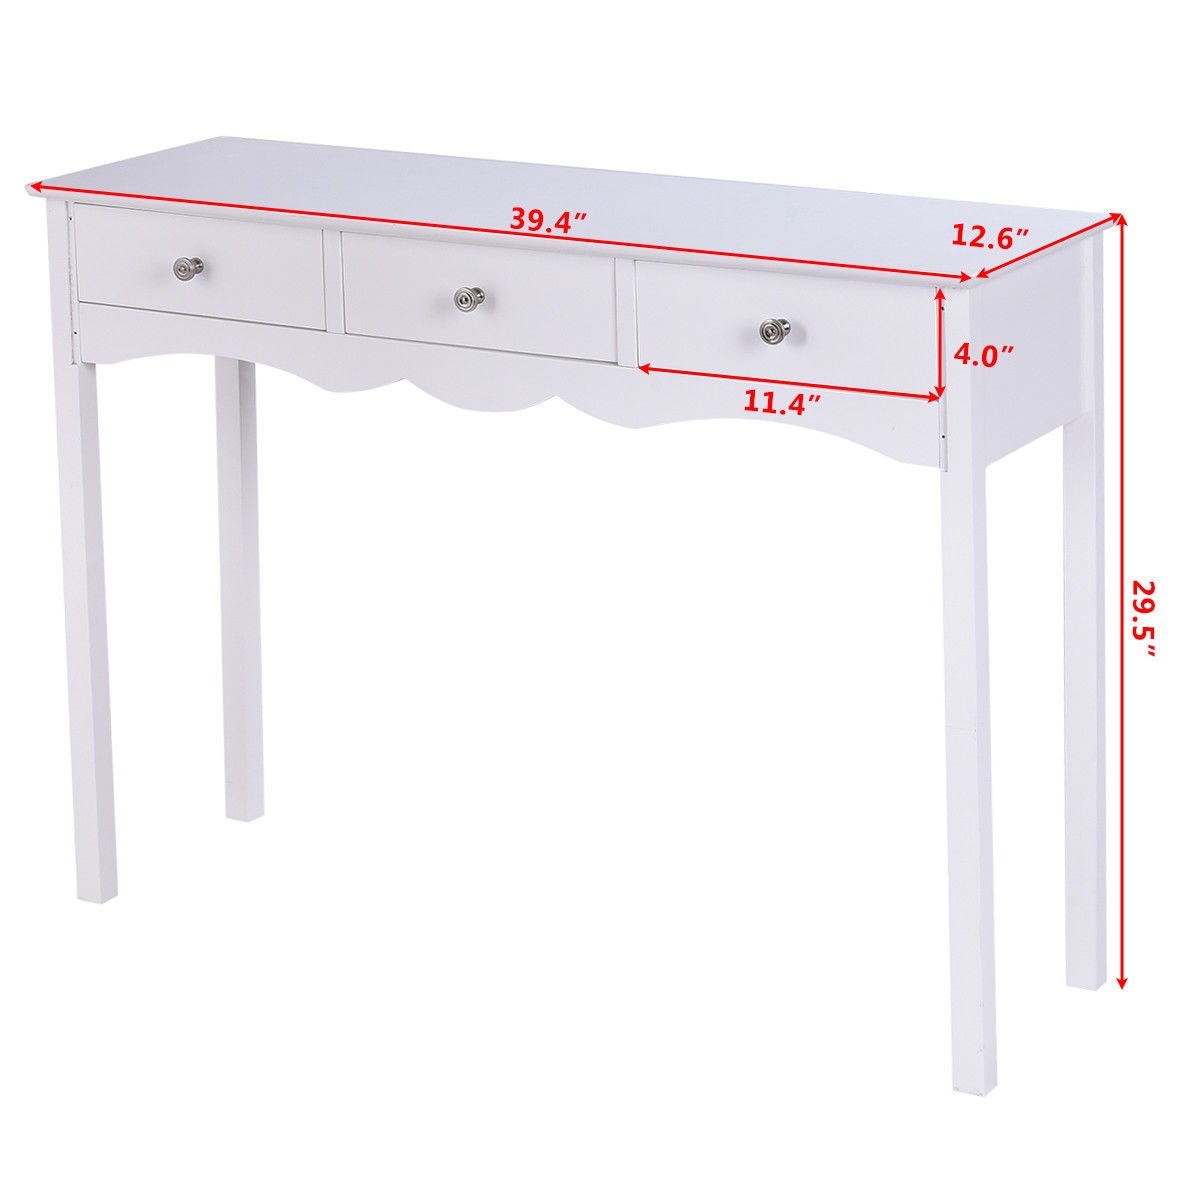 way console table hall side desk accent with drawers entryway white lotus led lights high round bar bedside pedestal legs pottery barn bedroom ideas marble top coffee threshold